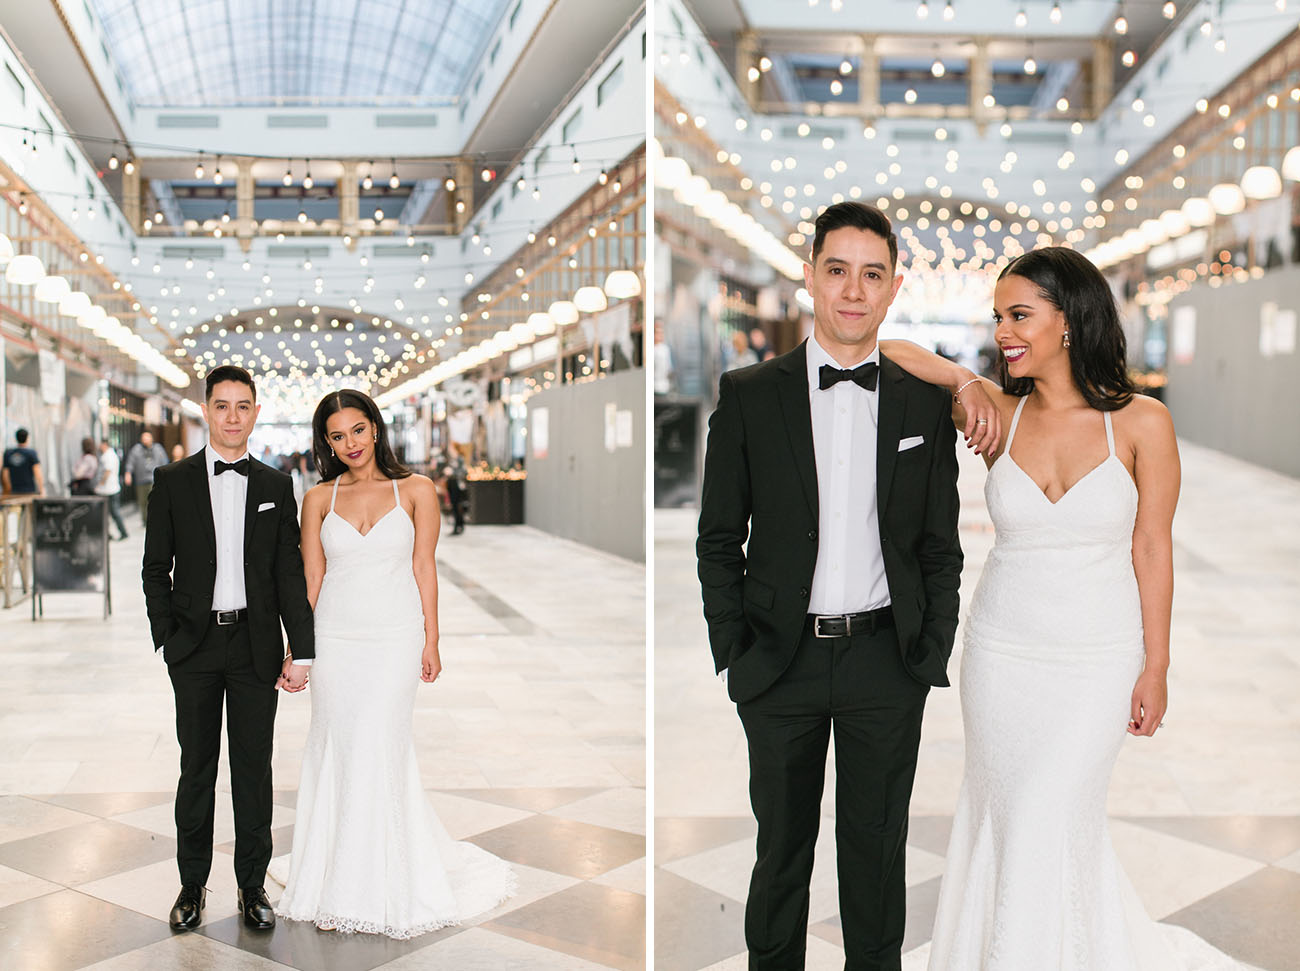 Gowns in downtown los angeles - Stylish Downtown La Wedding